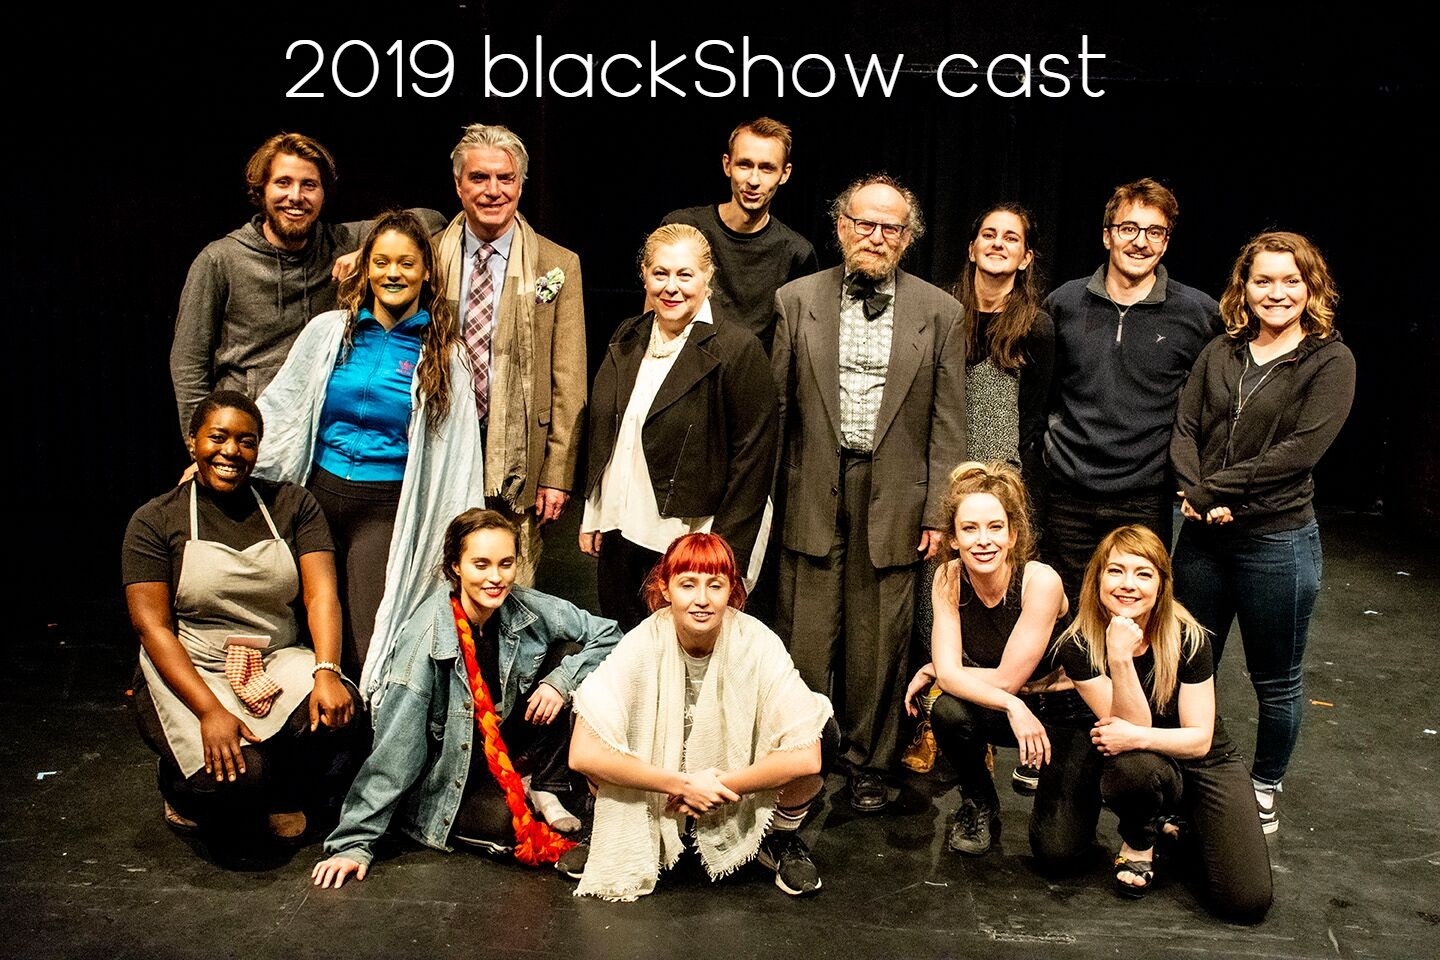 blackshow cast - 2019.jpg